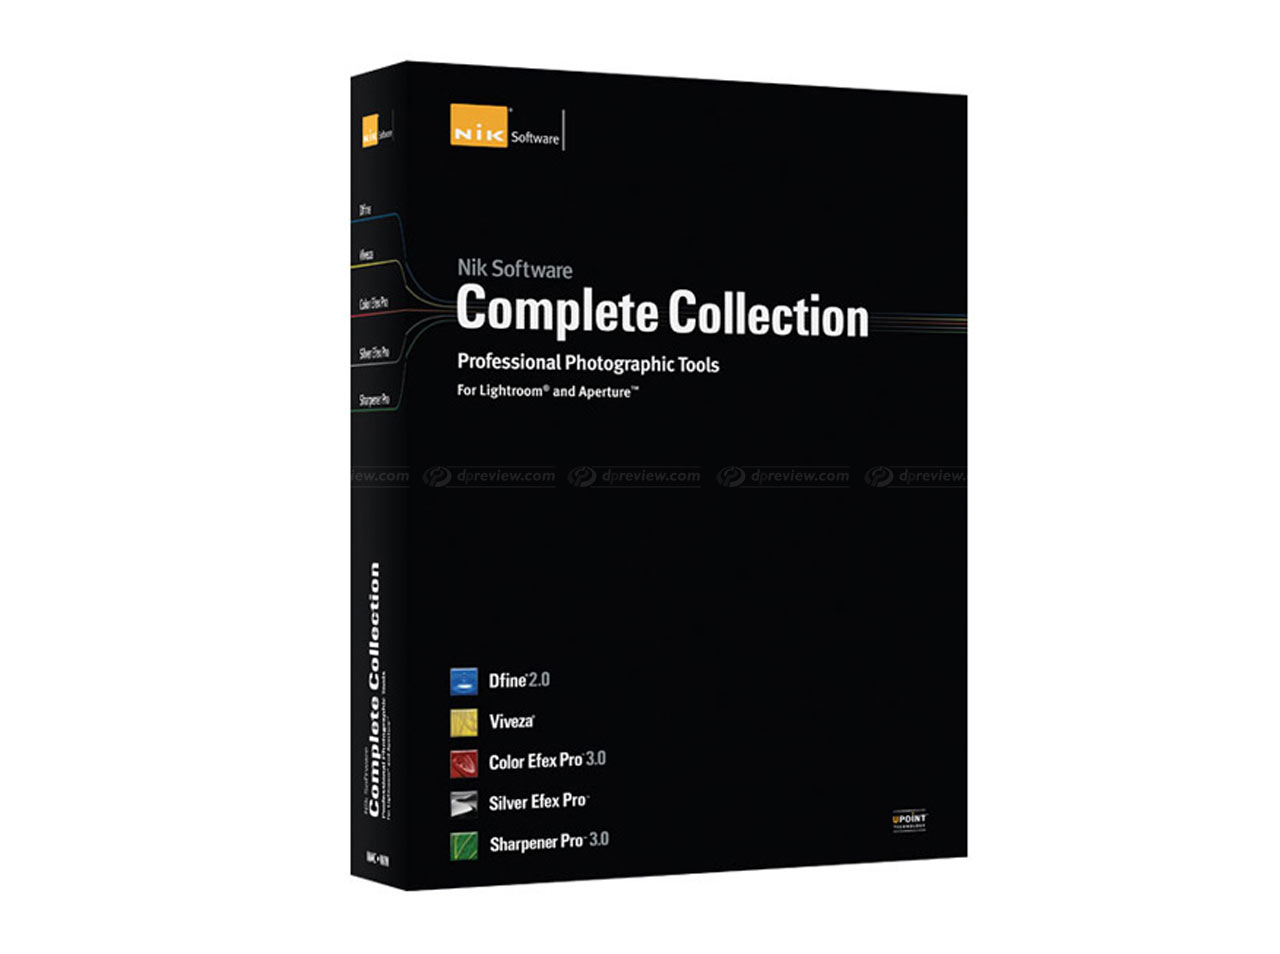 Nik software complete collection ultimate edition